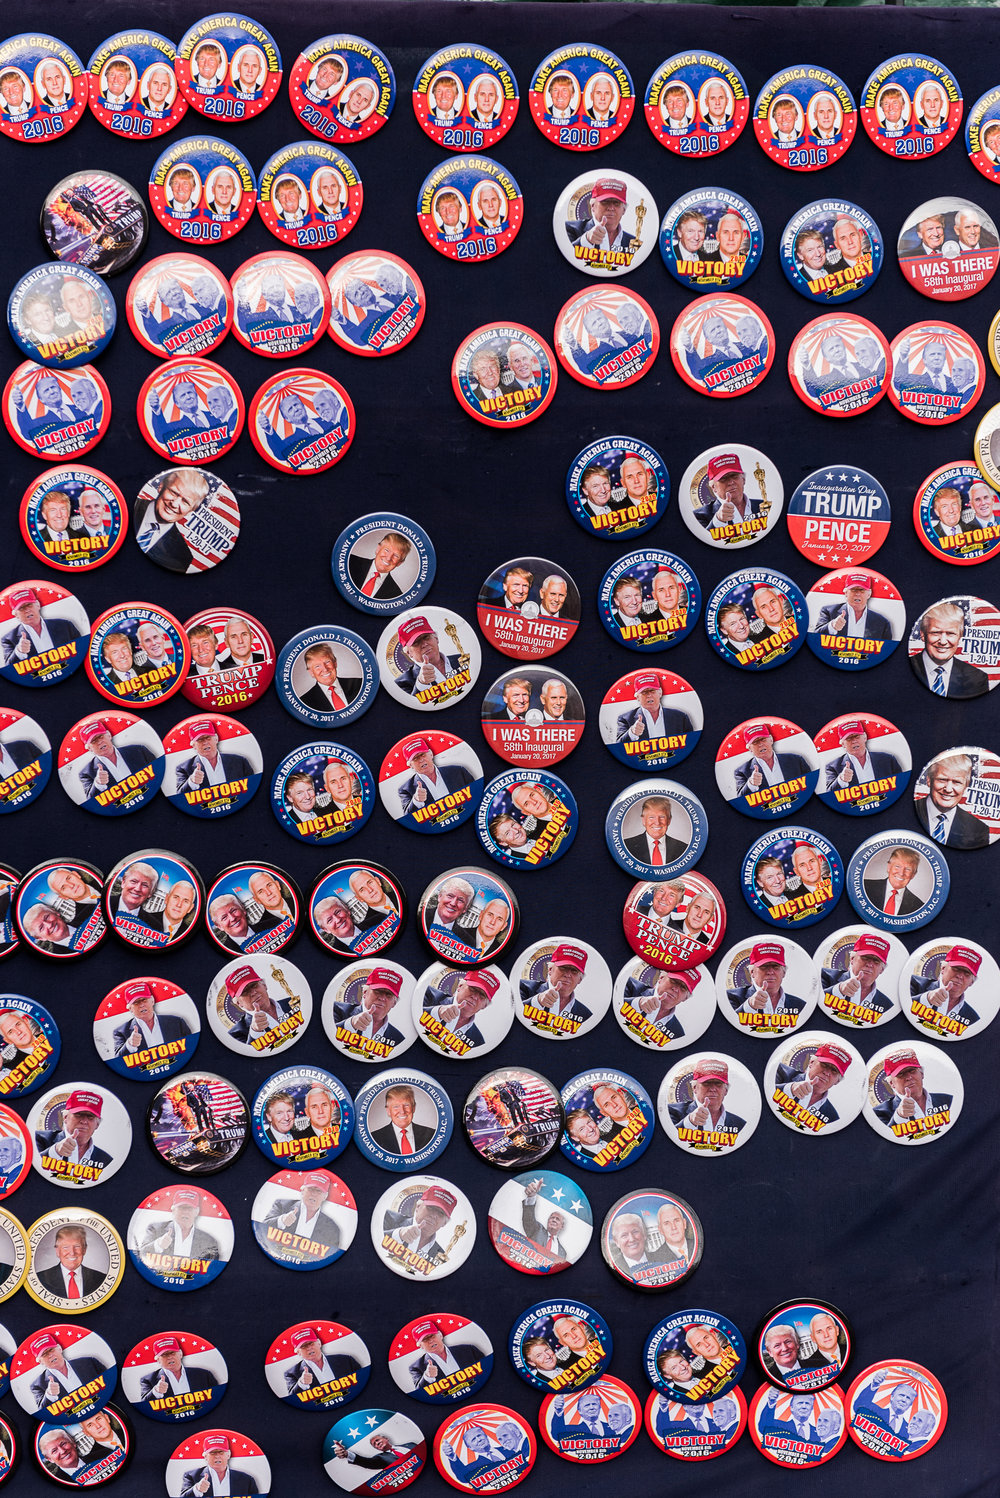 Inauguration buttons sit on display for people to purchase, Thursday, January 19, 2017.